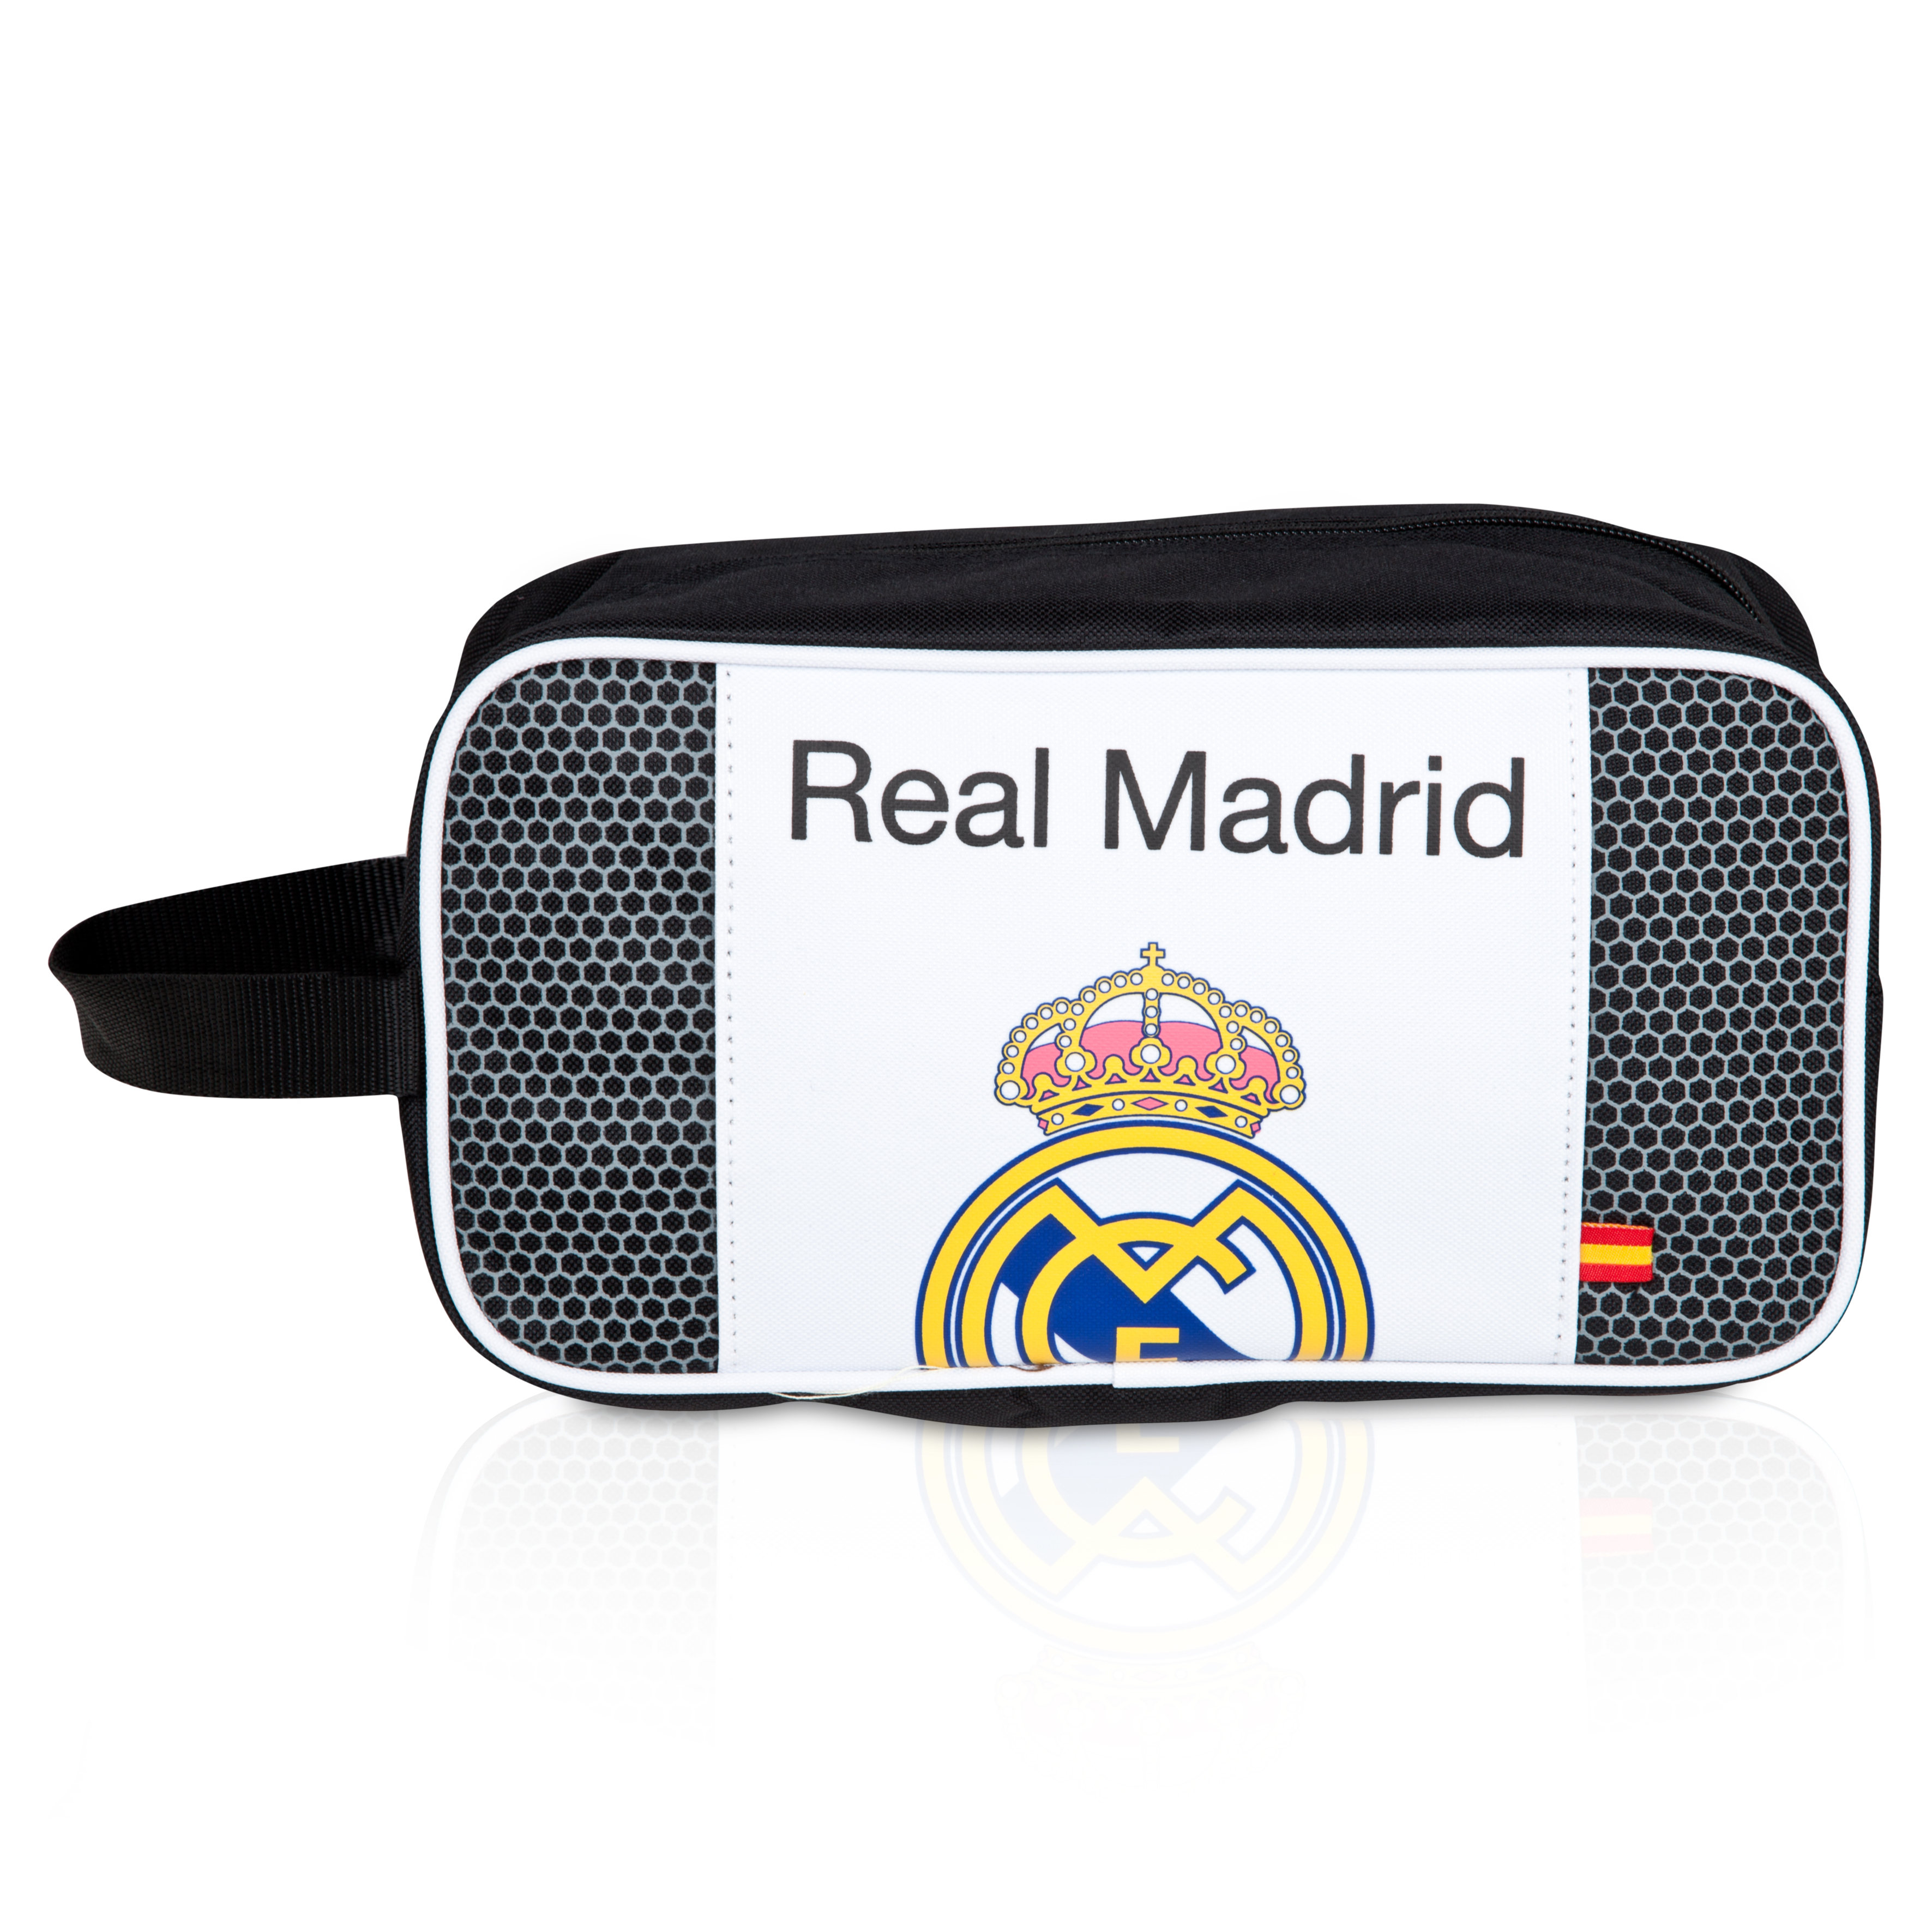 Real Madrid bolso para botas